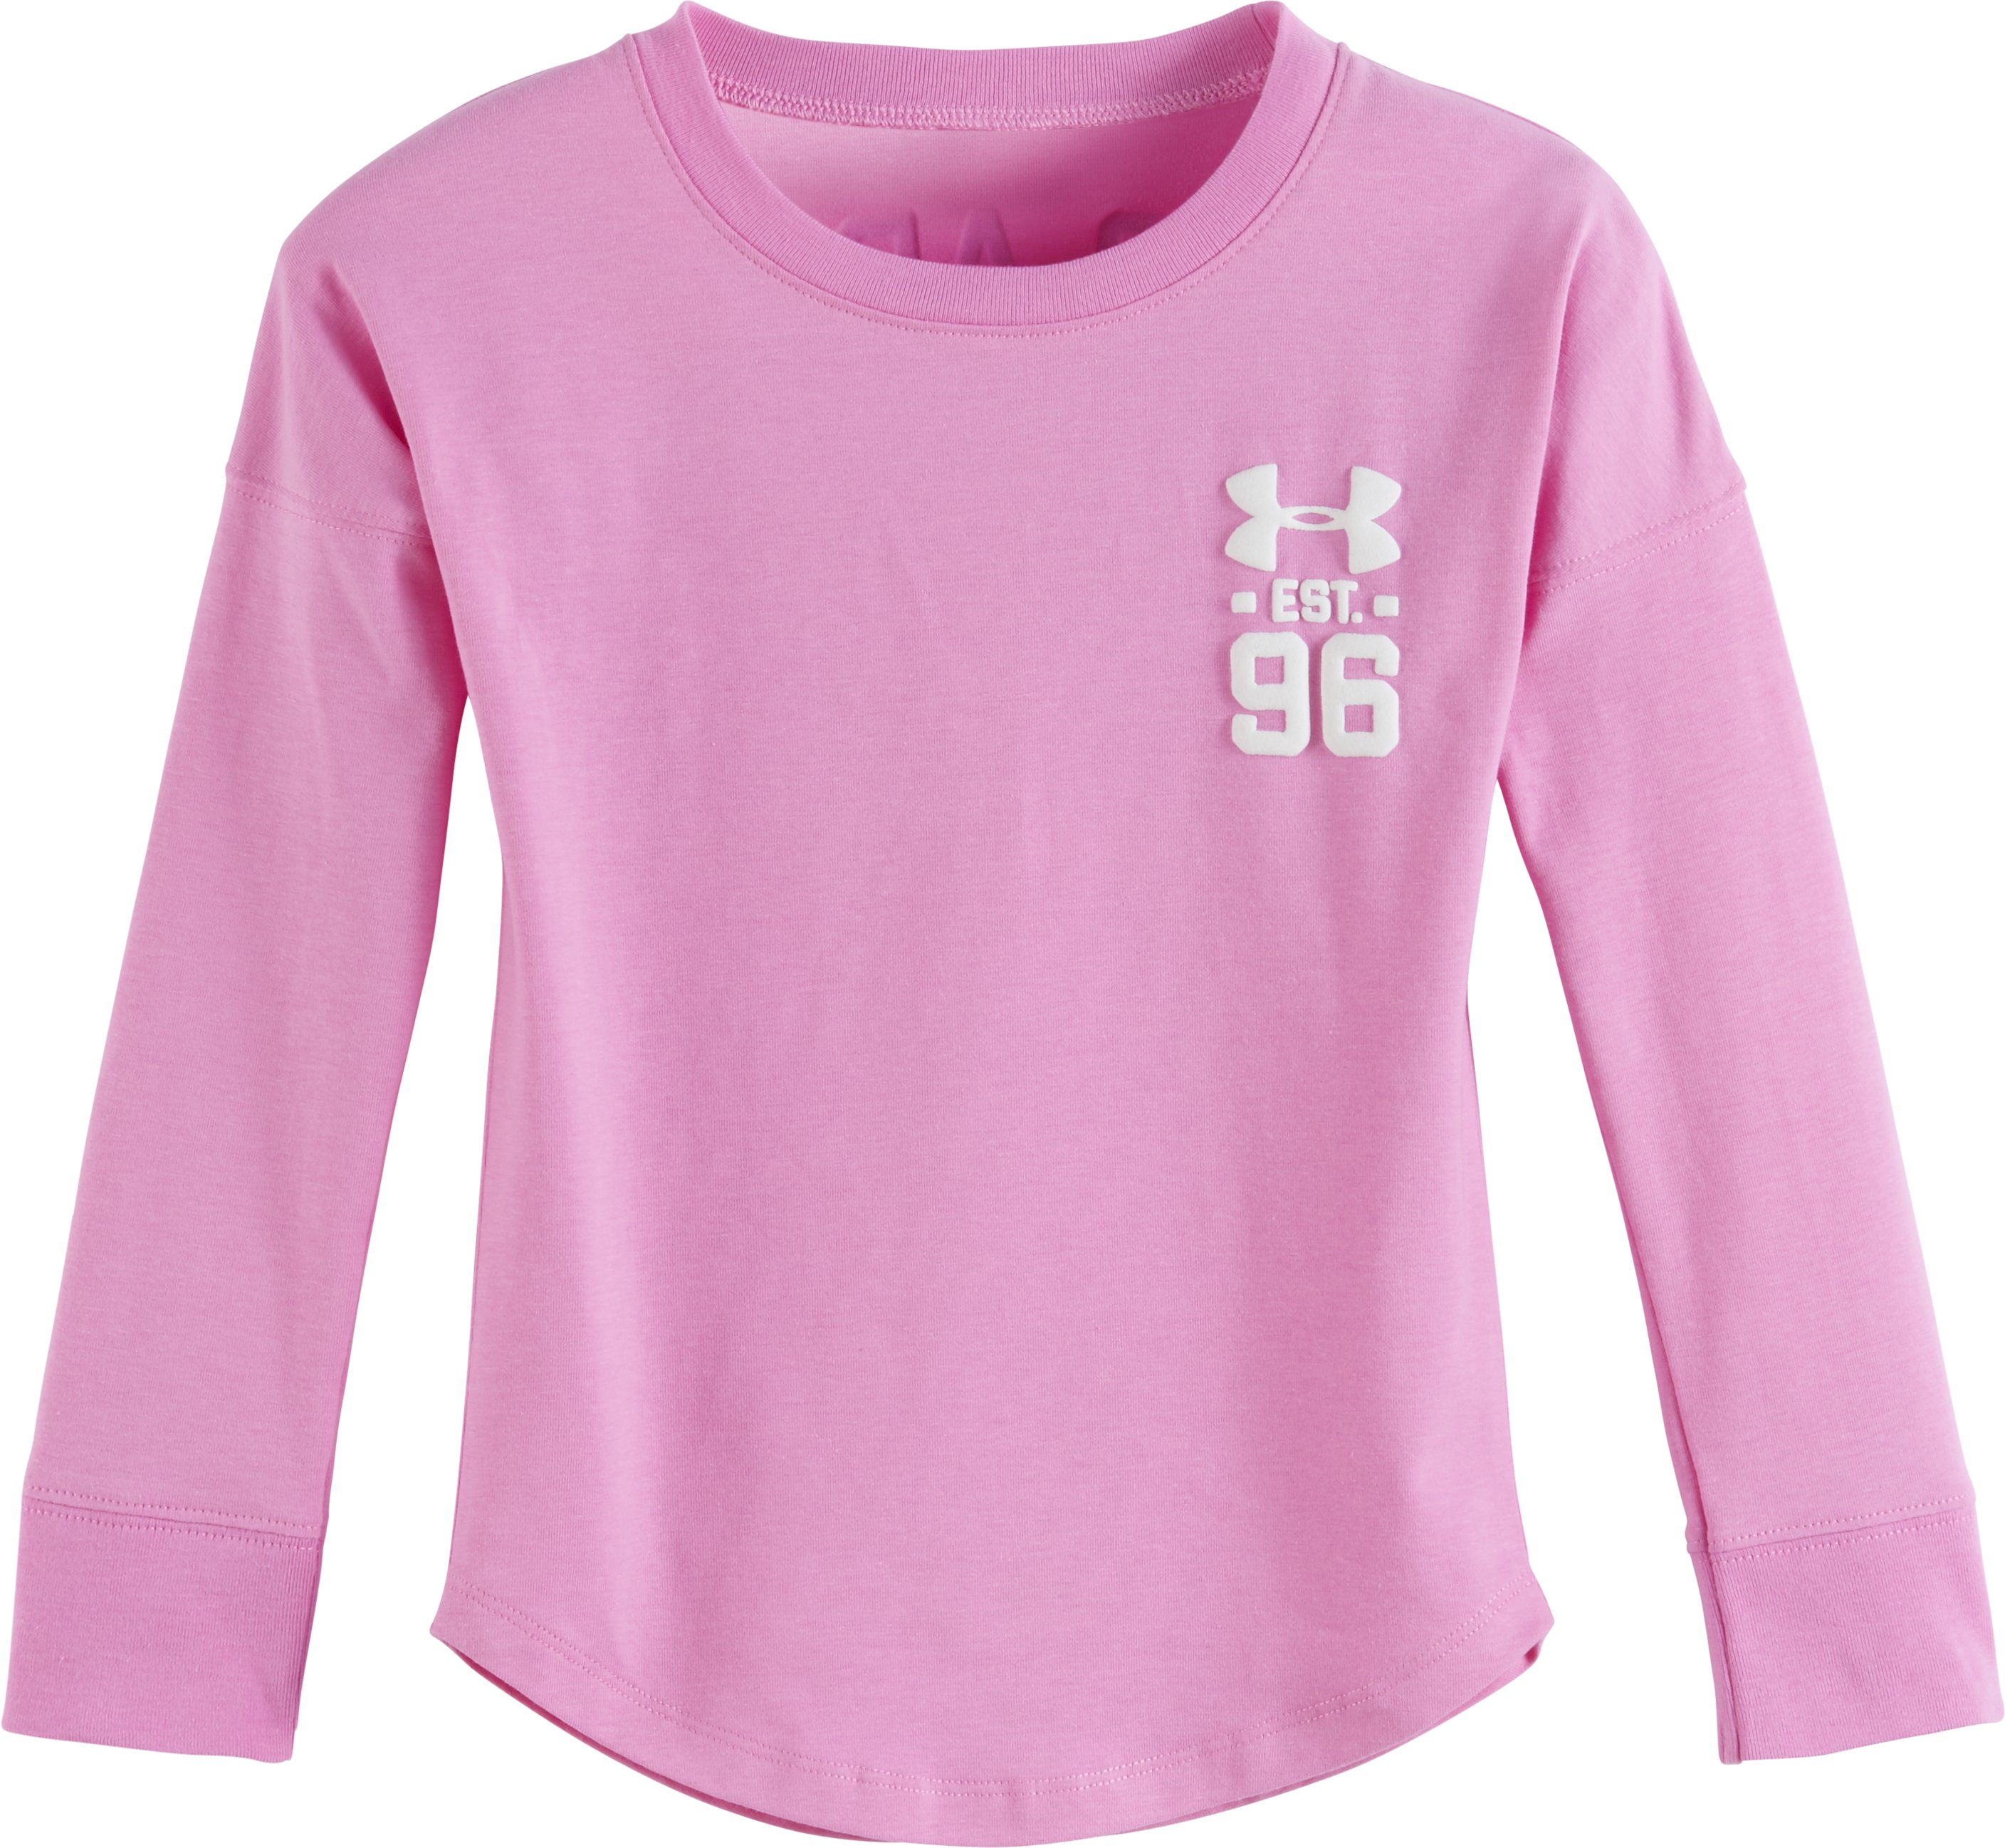 Girls' Pre-School UA Varsity Long Sleeve, VERVE VIOLET